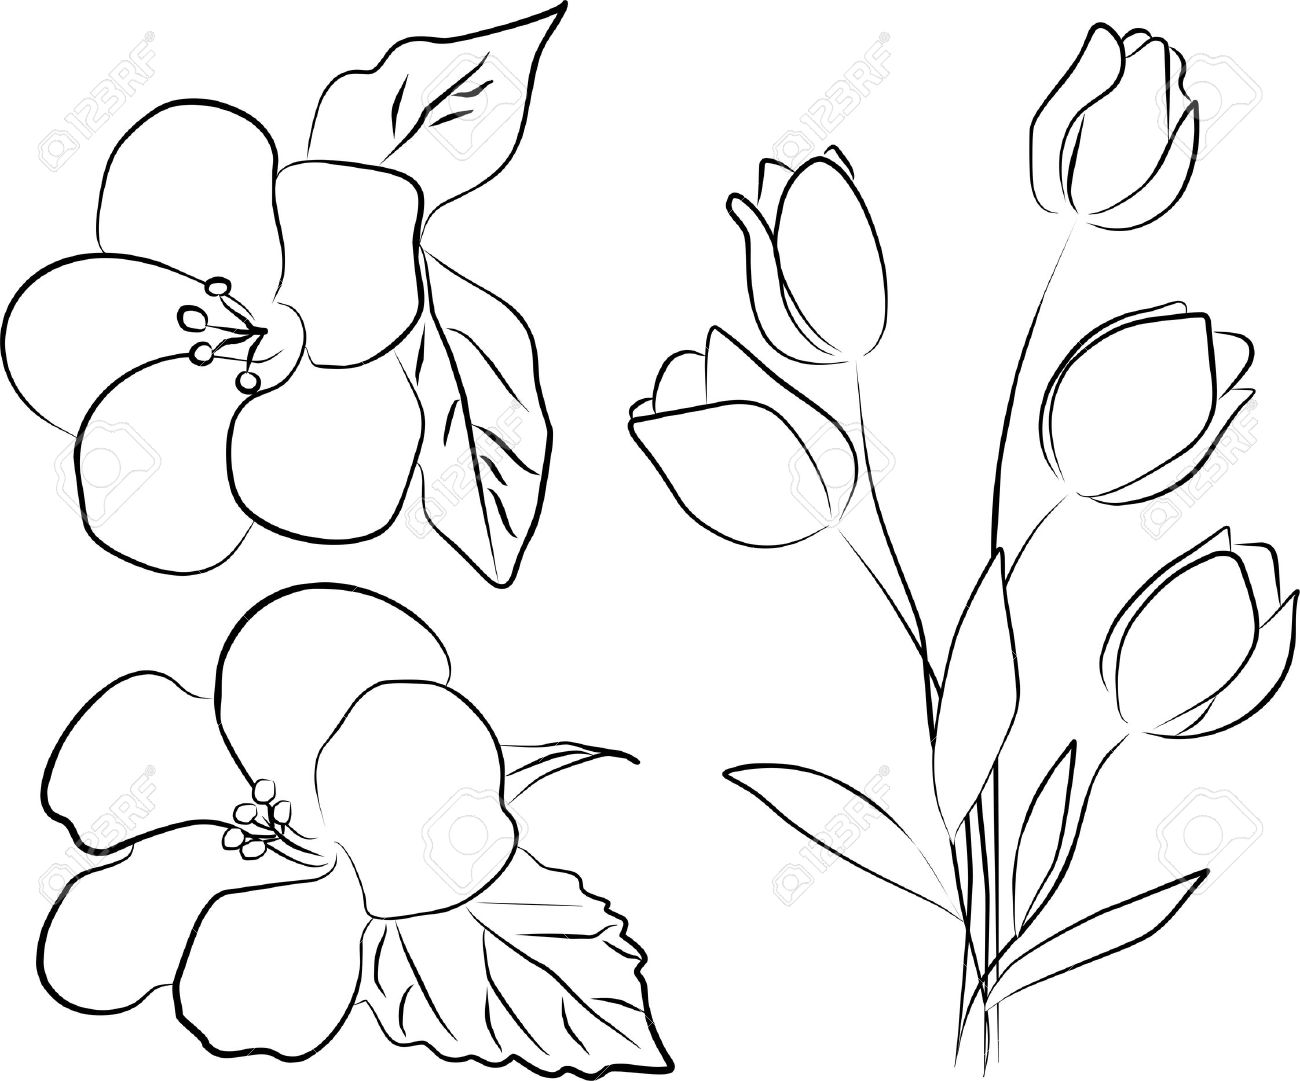 Simple Line Drawing Of Flower : Simple flower line drawing at getdrawings free for